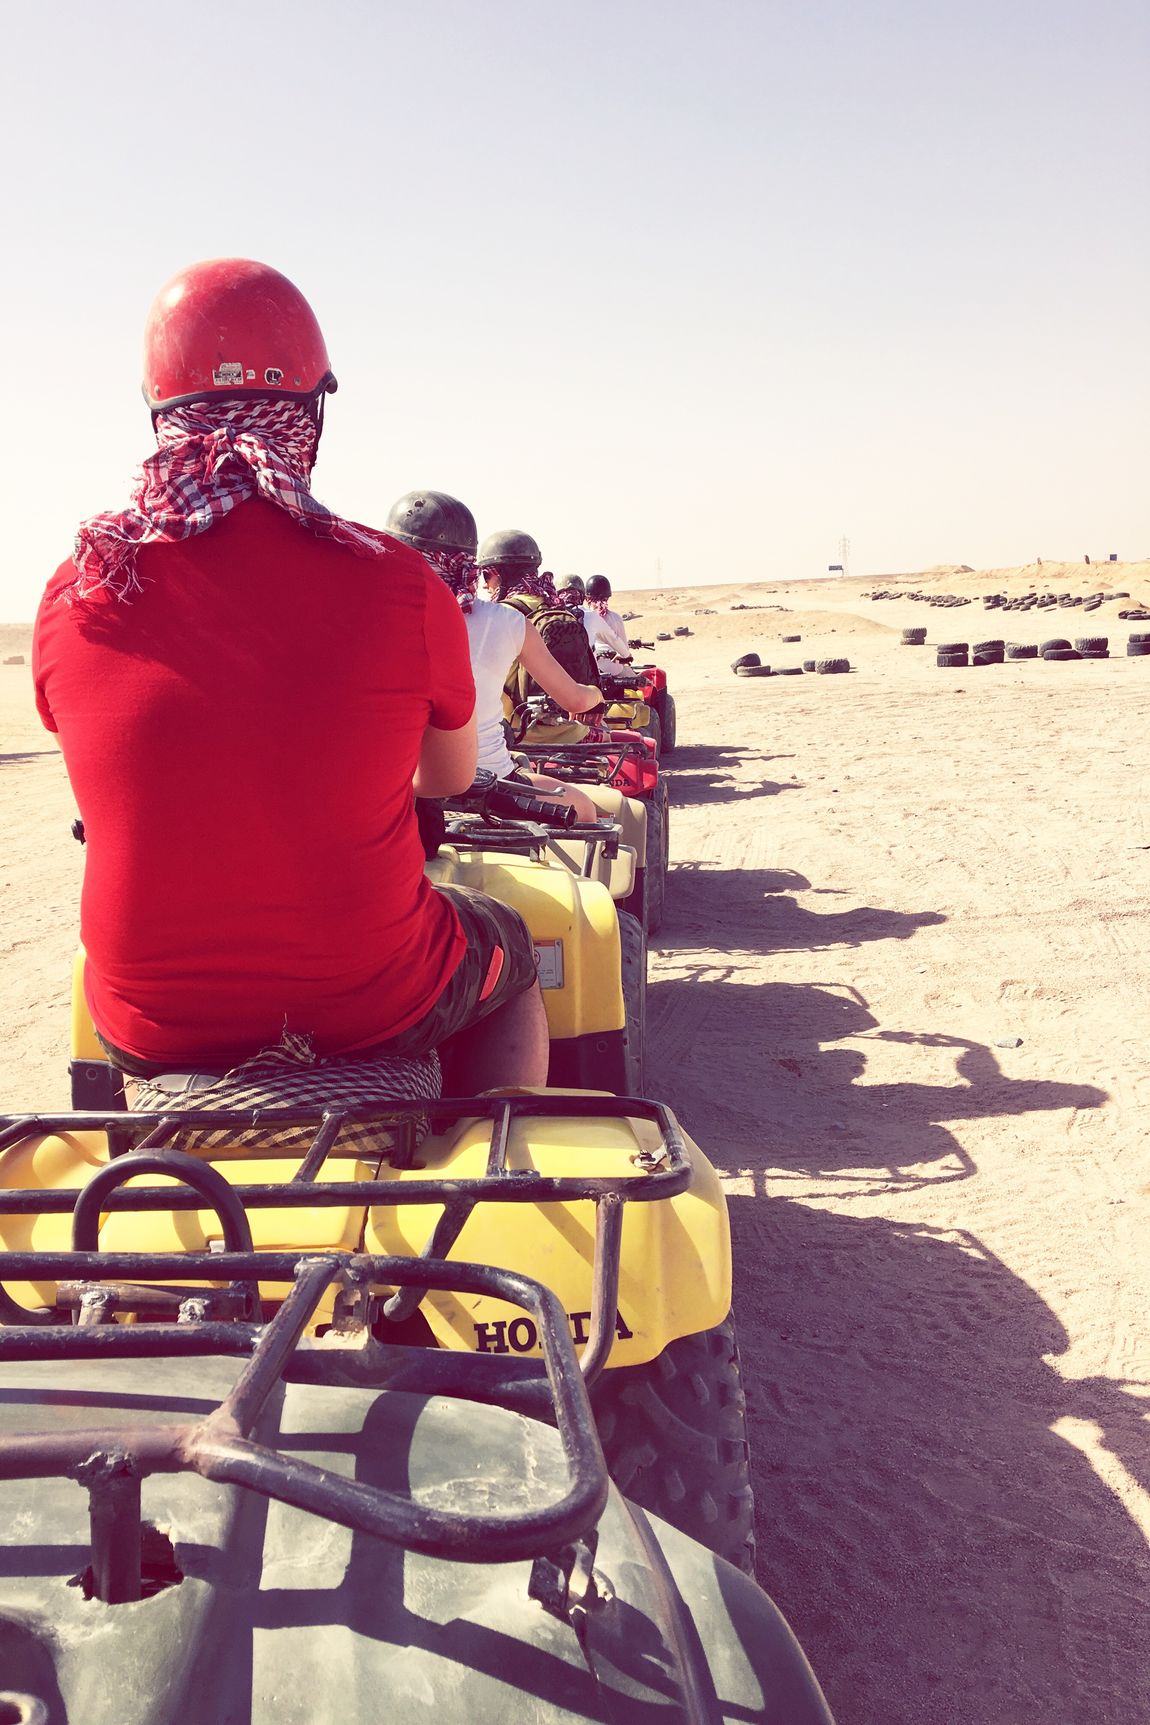 Sitting Beachbuggy Real People Men Sand Rear View Day Togetherness Leisure Activity Outdoors Sunlight Sea Transportation Lifestyles Shadow Chair Clear Sky Riding Vacations Safari Hurghada Desert